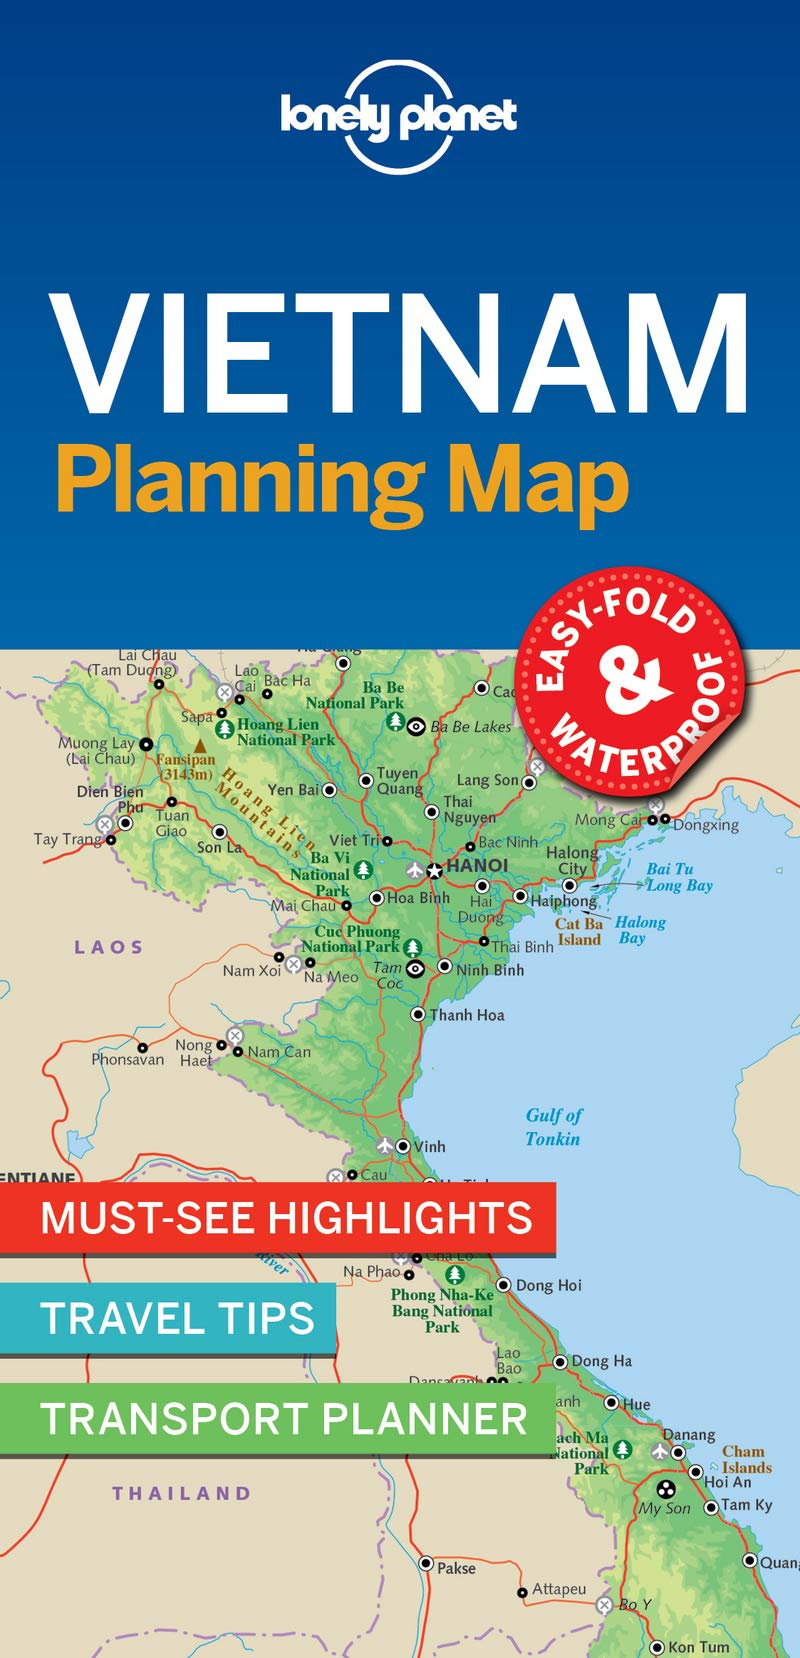 Mountains In Vietnam Map.Lonely Planet Vietnam Planning Map Lonely Planet 9781787014565